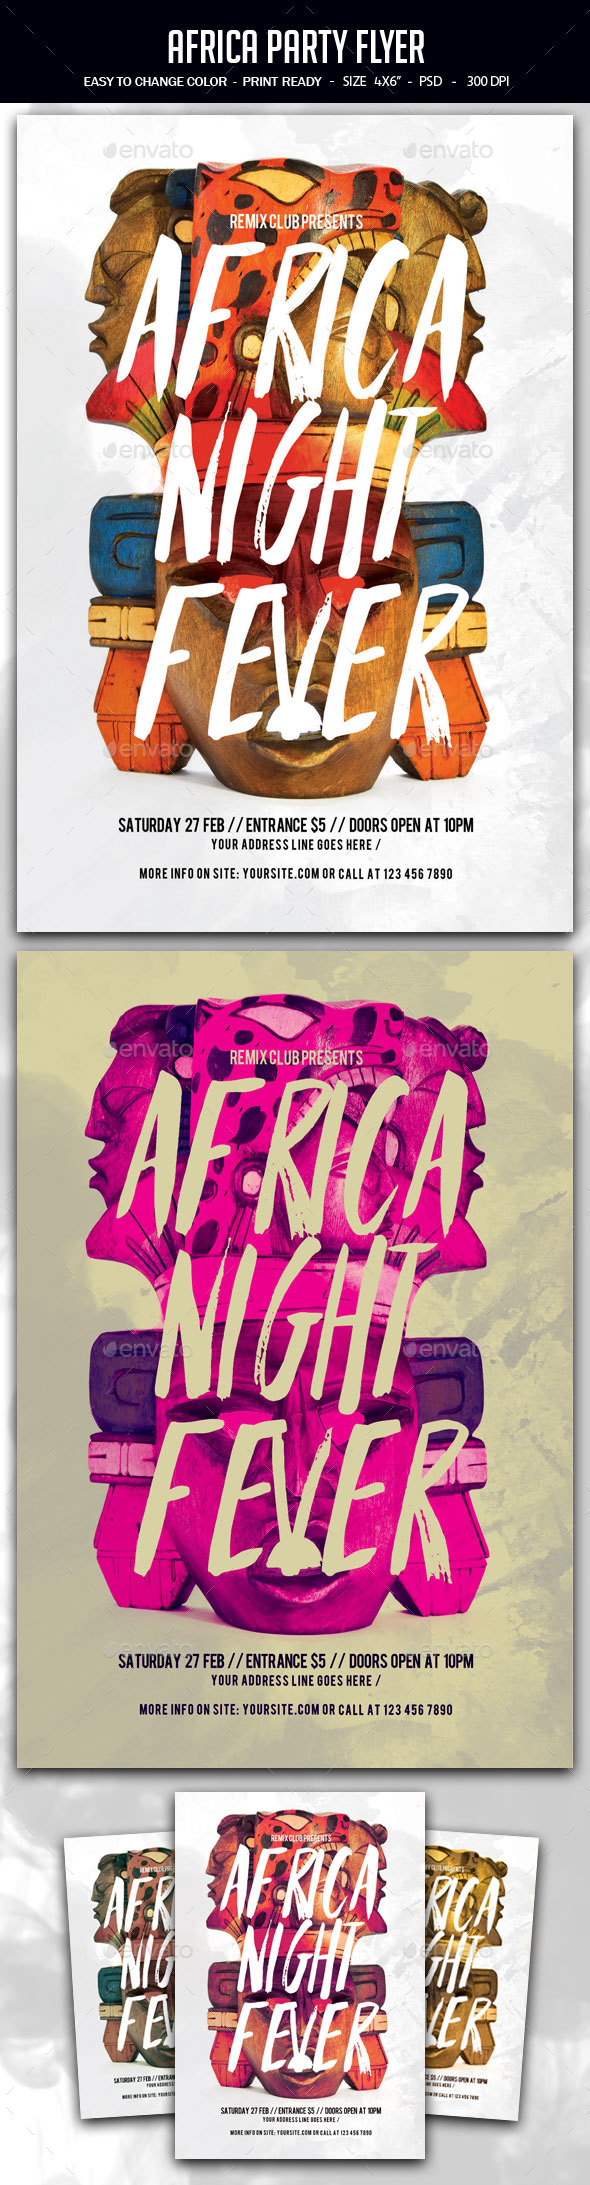 Africa Party Flyer - Clubs & Parties Events